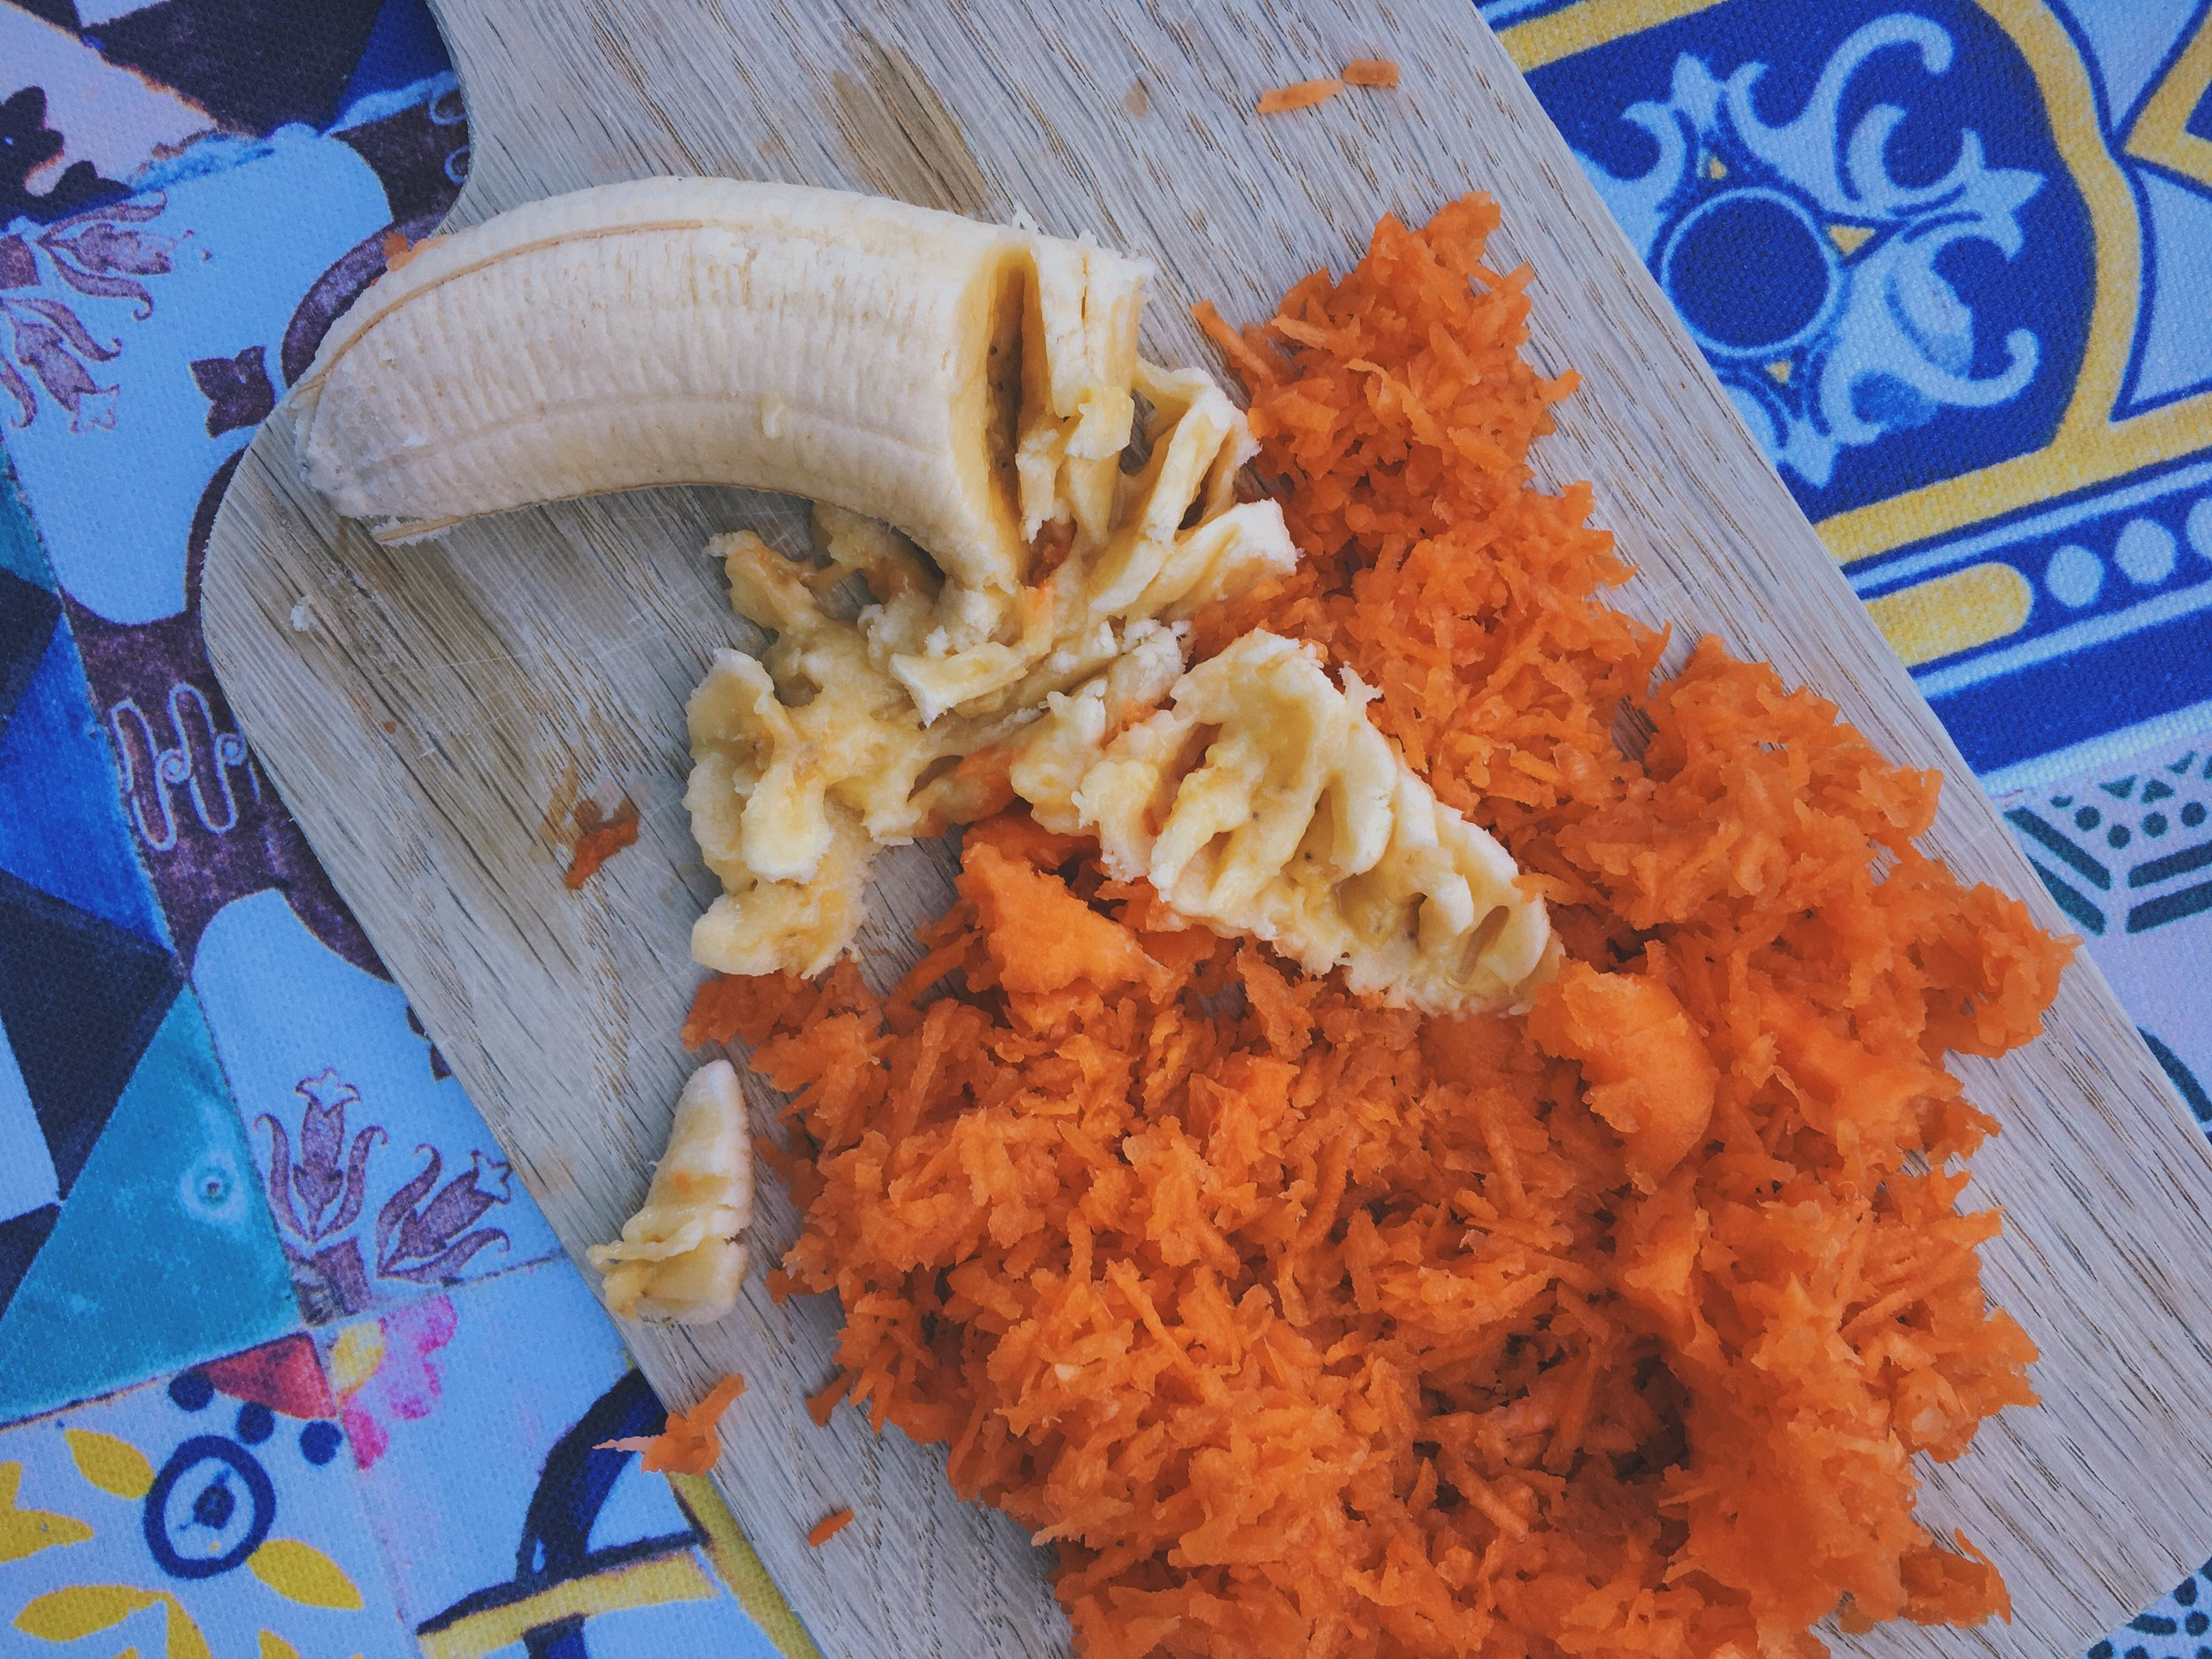 mashed banana and grated carrot